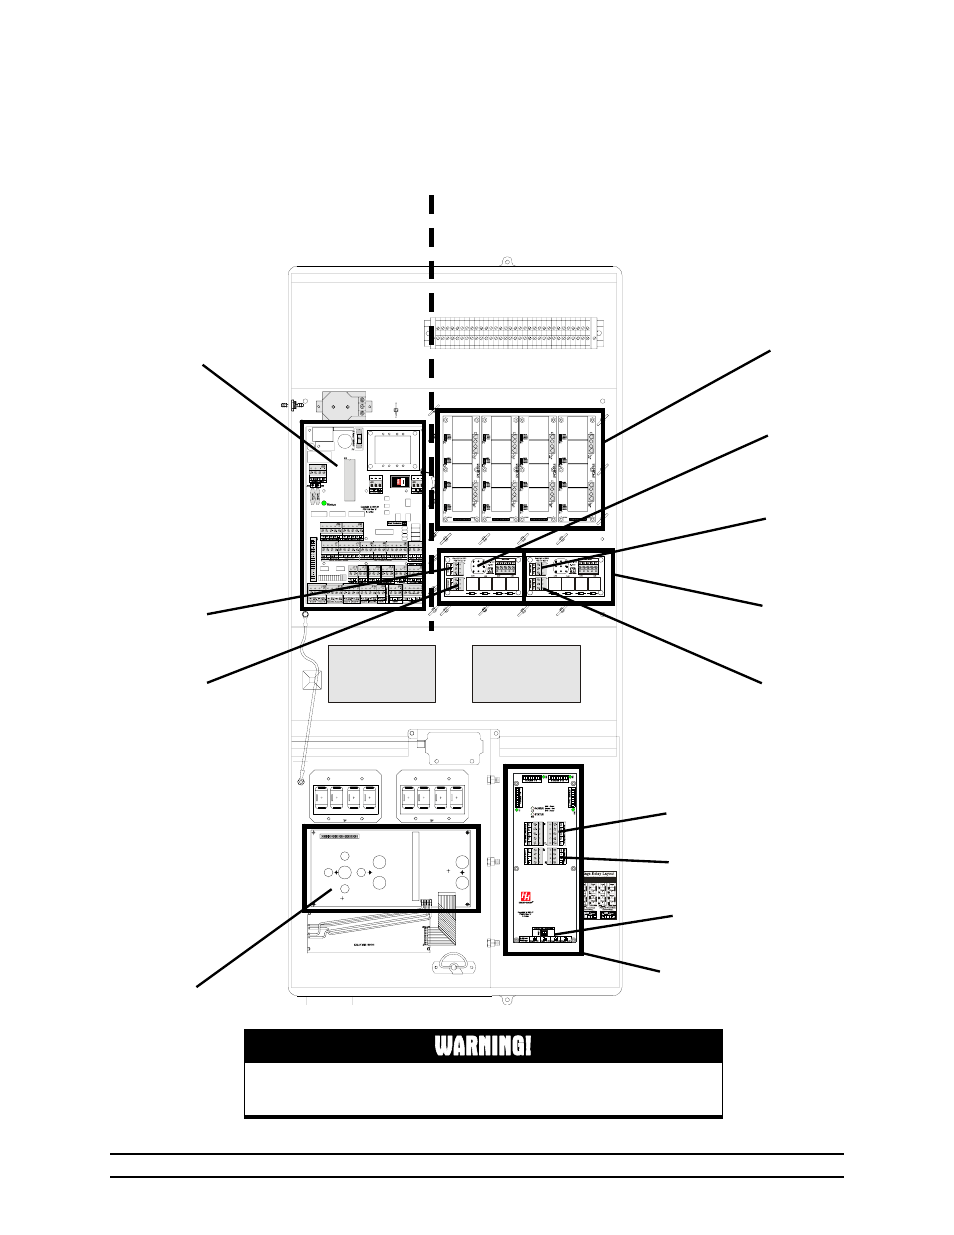 hight resolution of warning wiring diagrams hired hand evolution series 3000 3001 user manual page 44 70